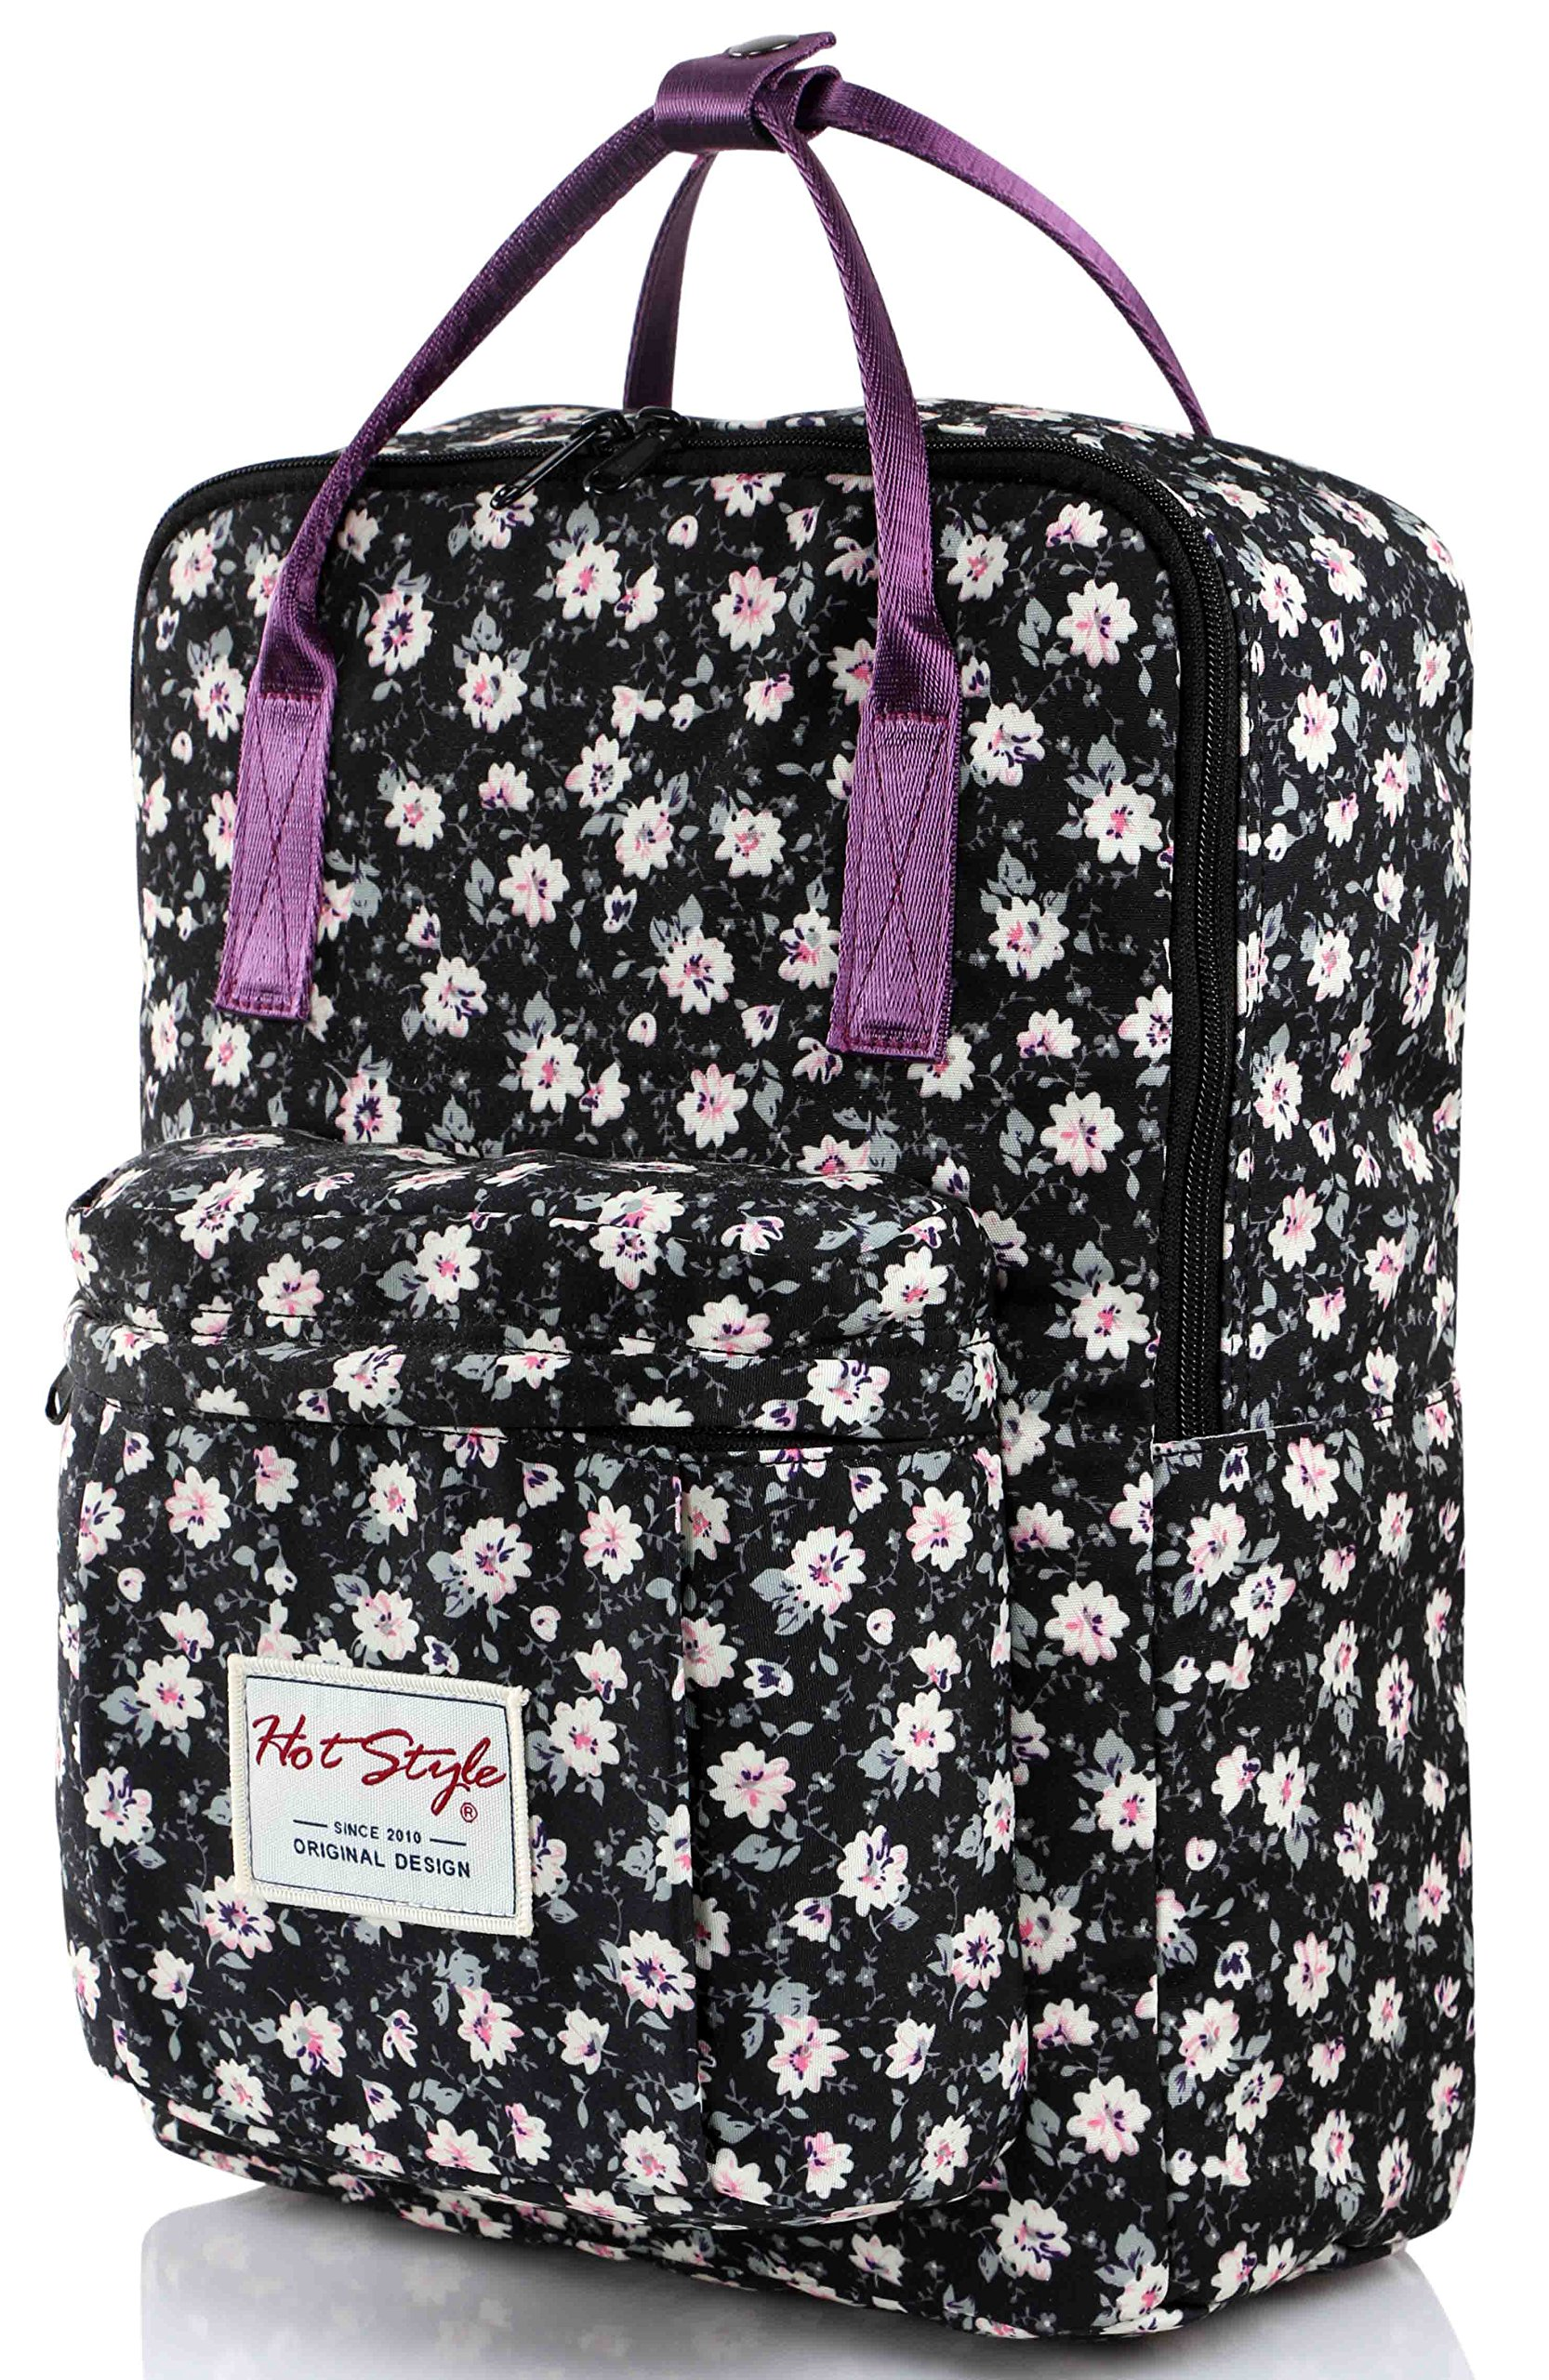 HotStyle Girls Floral Print Handbag Backpack - Waterproof Fits 13 inches Laptop - Black by hotstyle